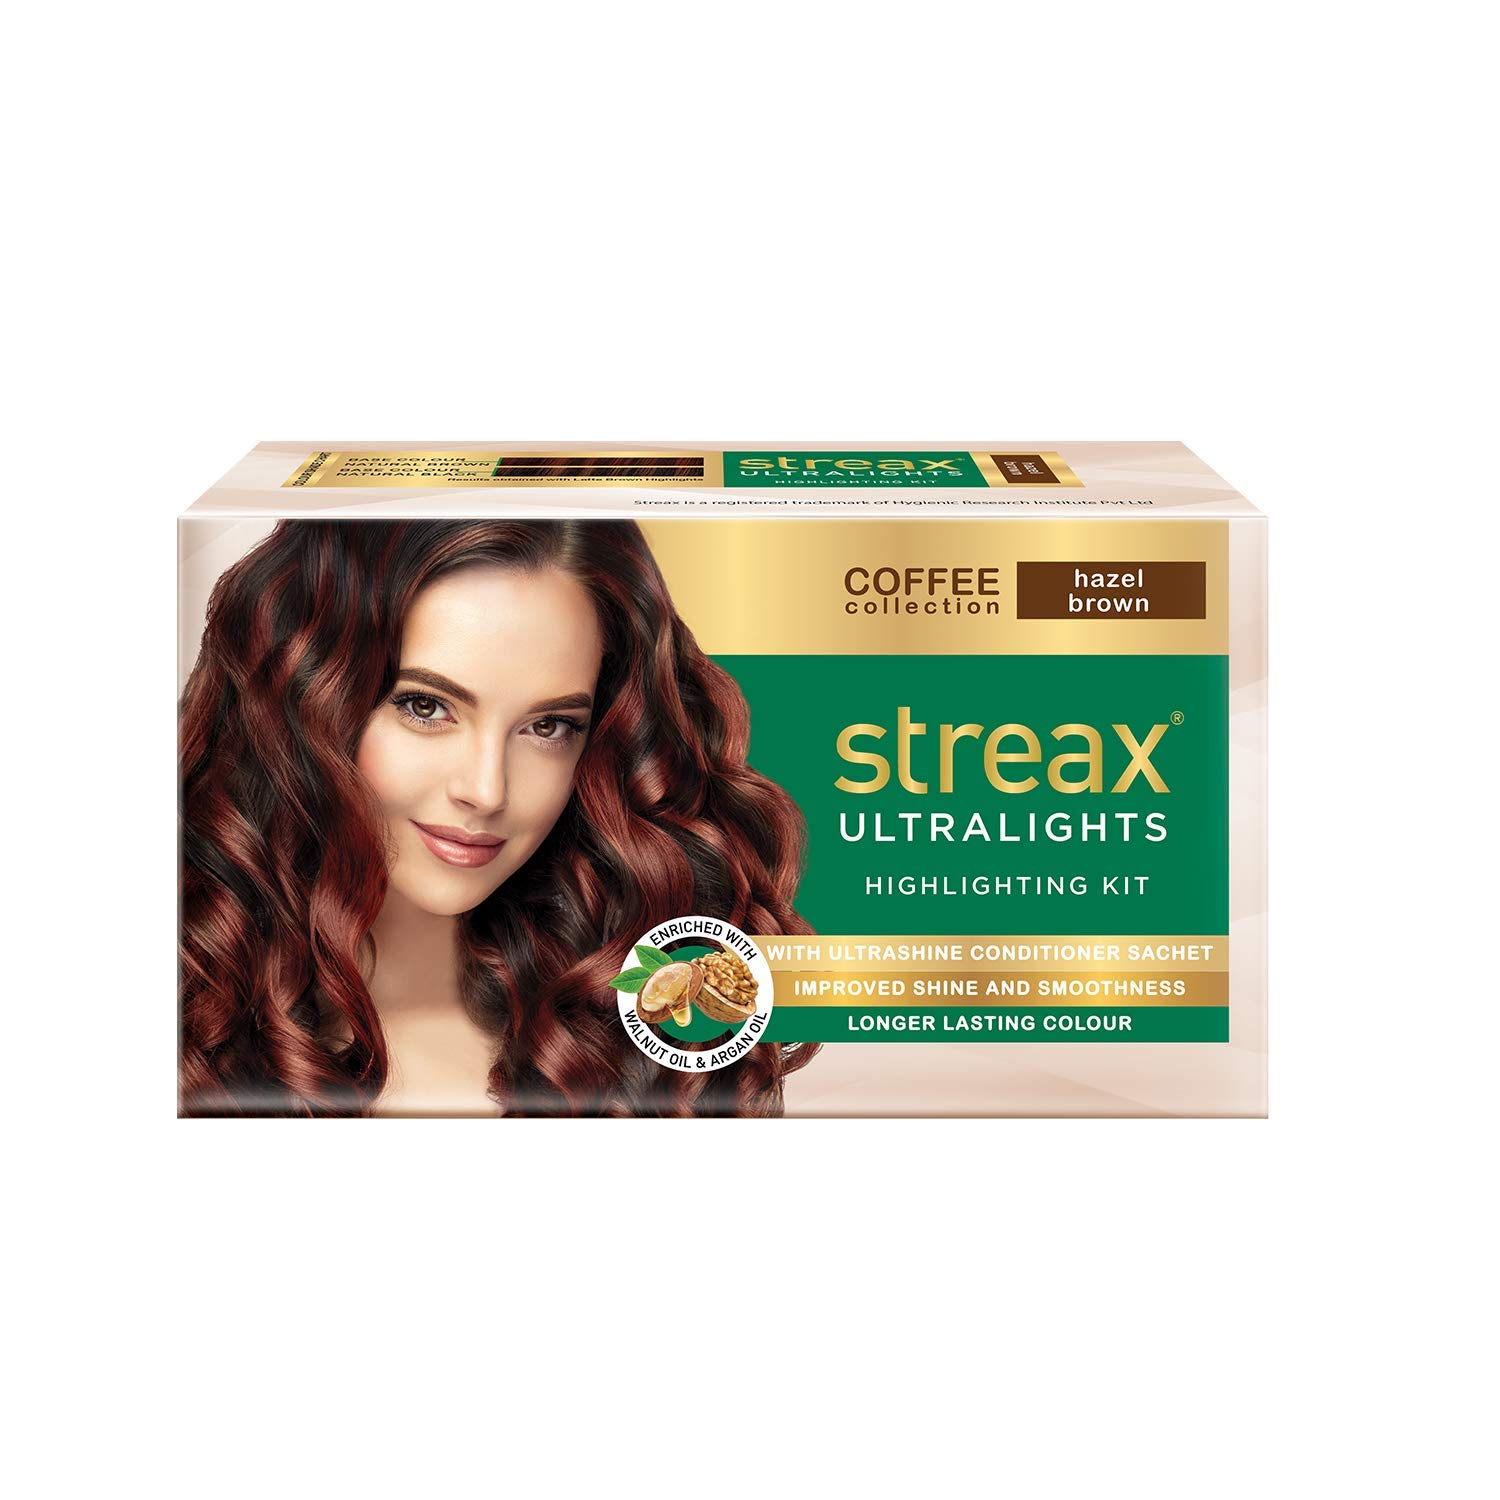 Streax Ultralights Highlighting Kit-Coffee Collection-Hazel Brown-Pack of 2 Hair Color????????(Hazel Brown)